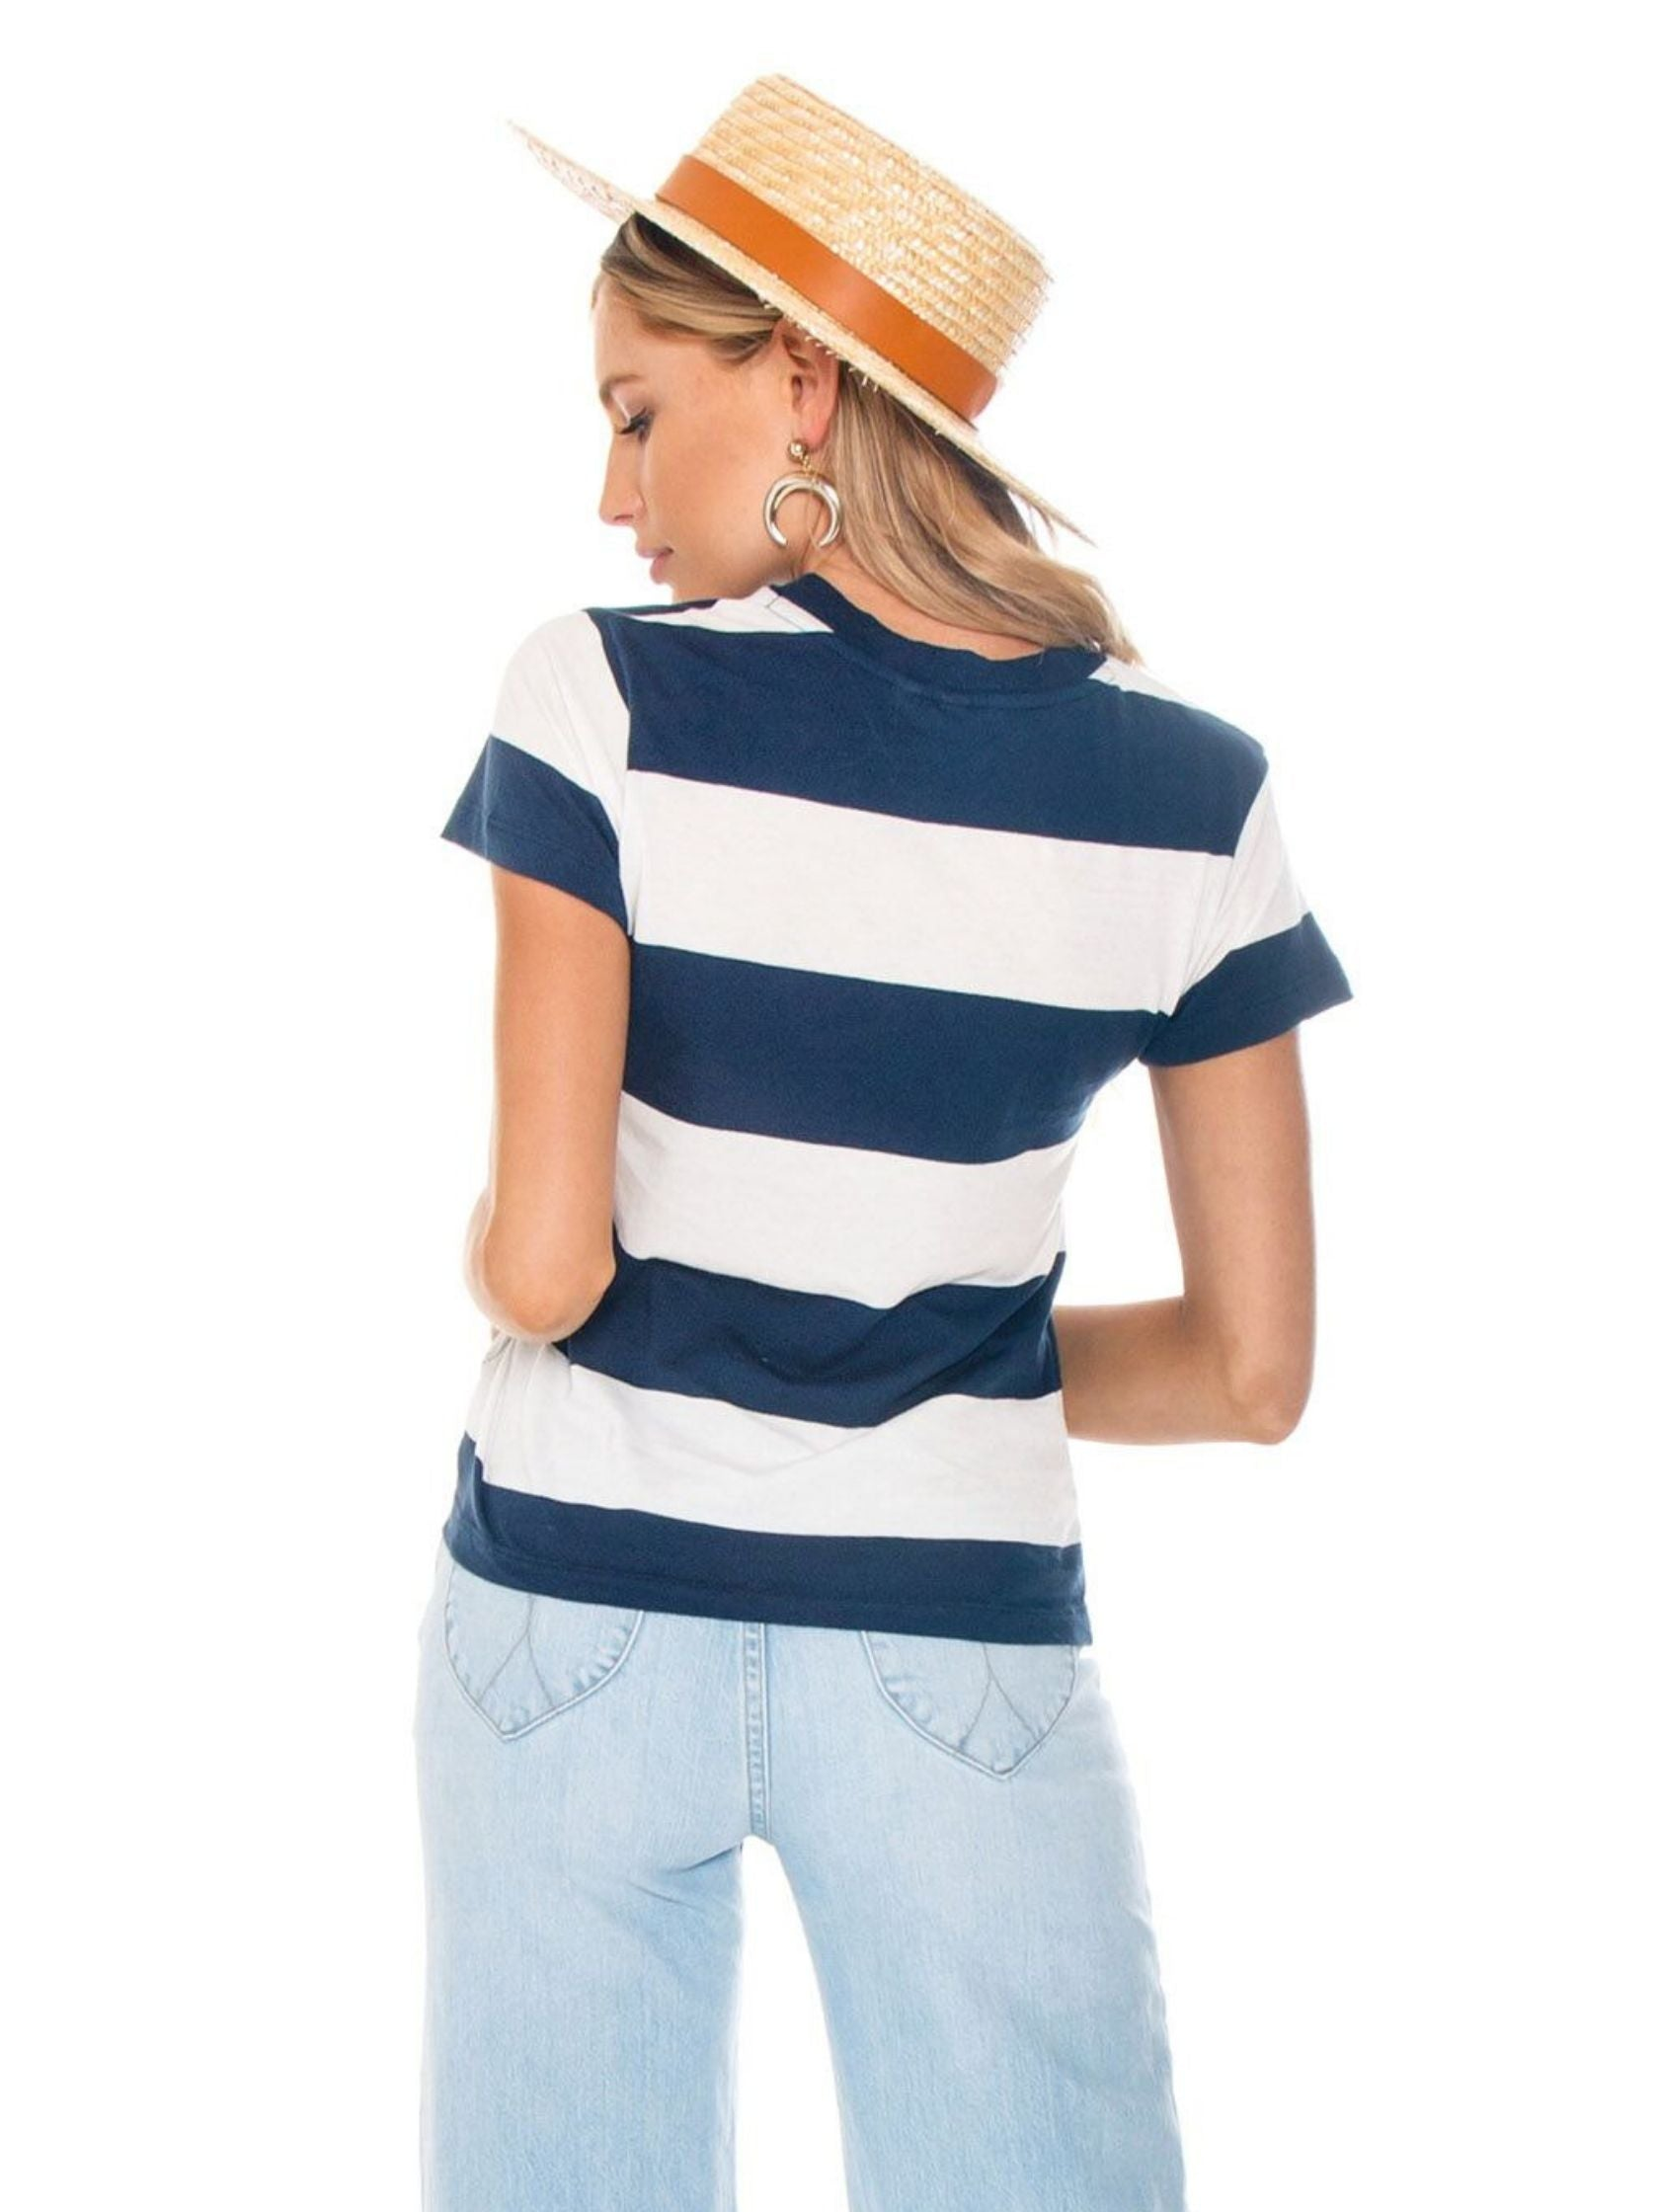 Women outfit in a top rental from ROLLAS called Big Stripe Tee